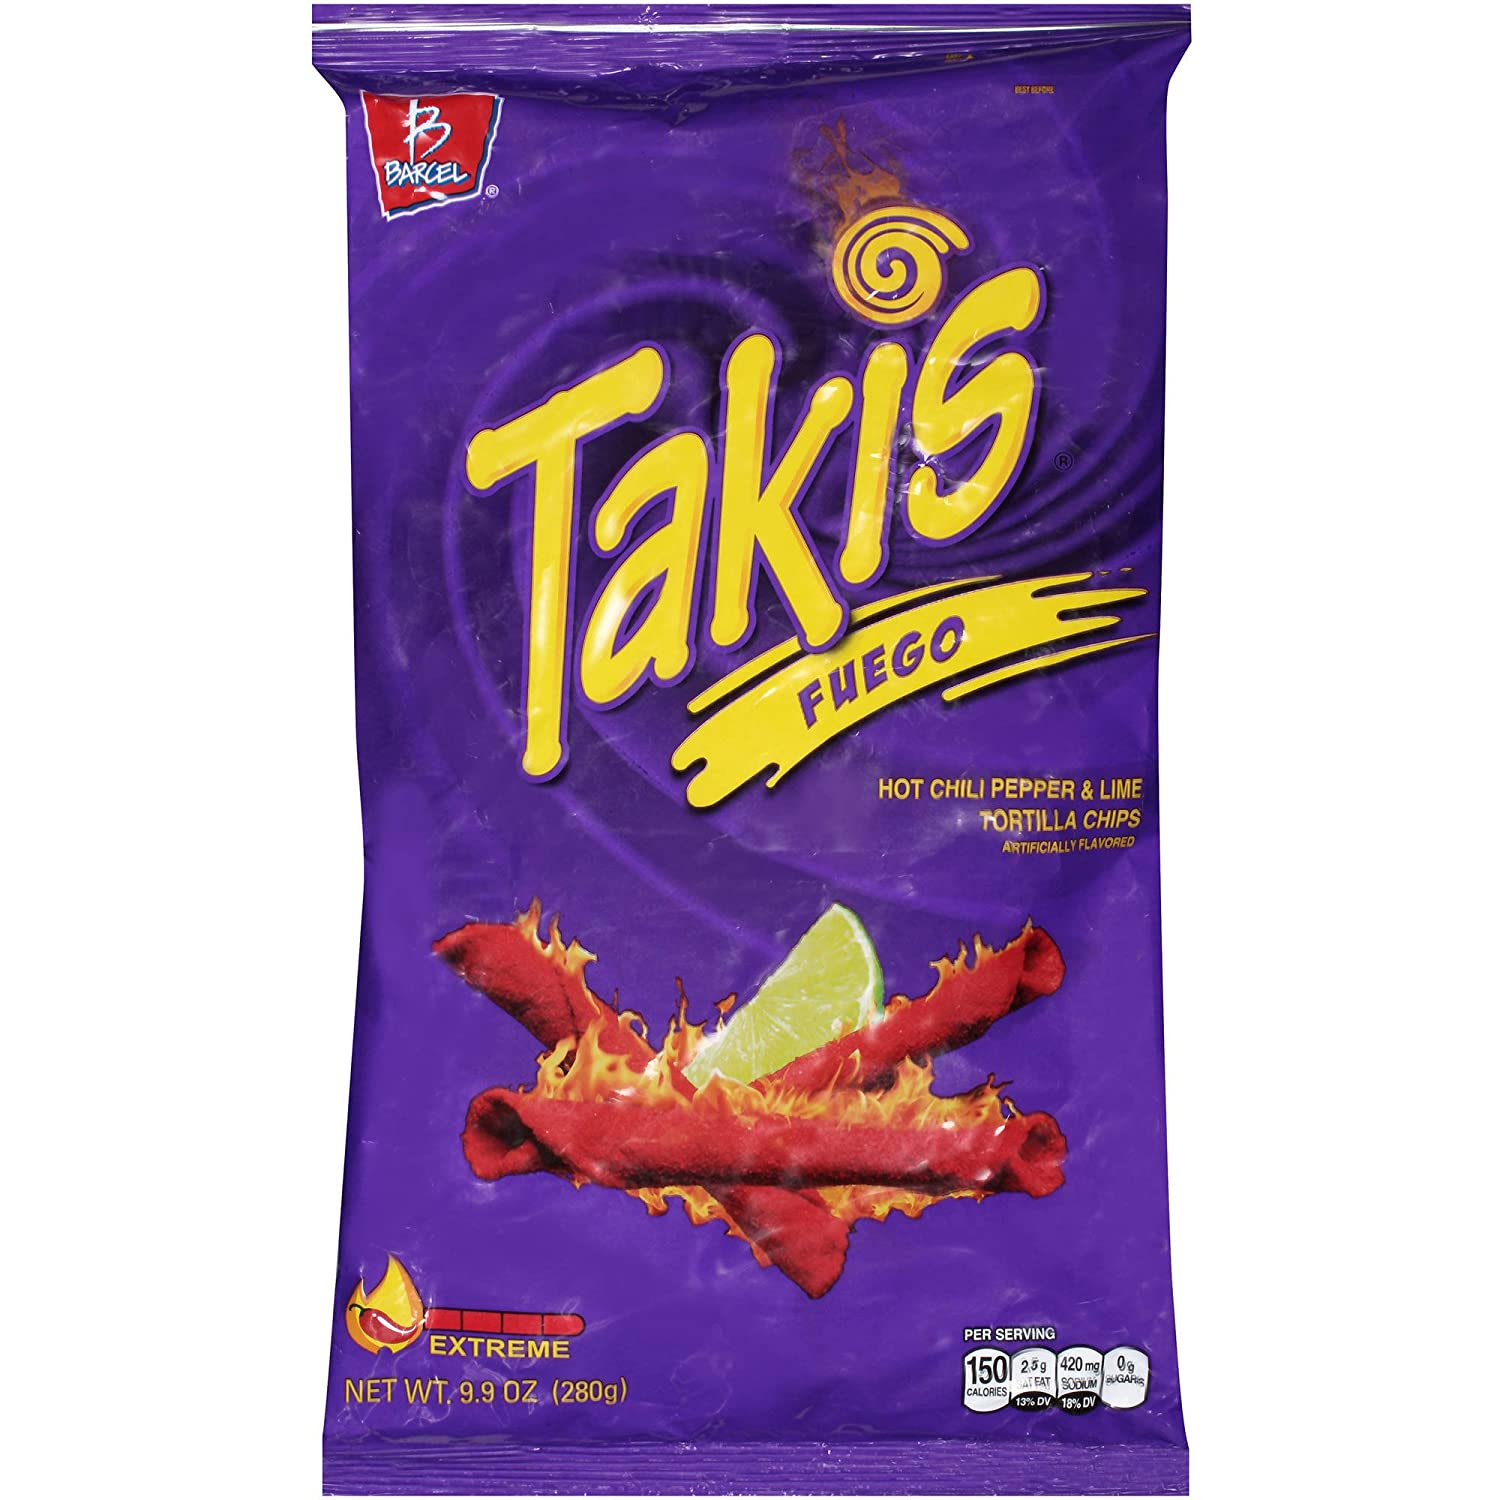 Takis Fuego Chili Pepper and Lime Tortilla Chips 9.9oz (113gm)